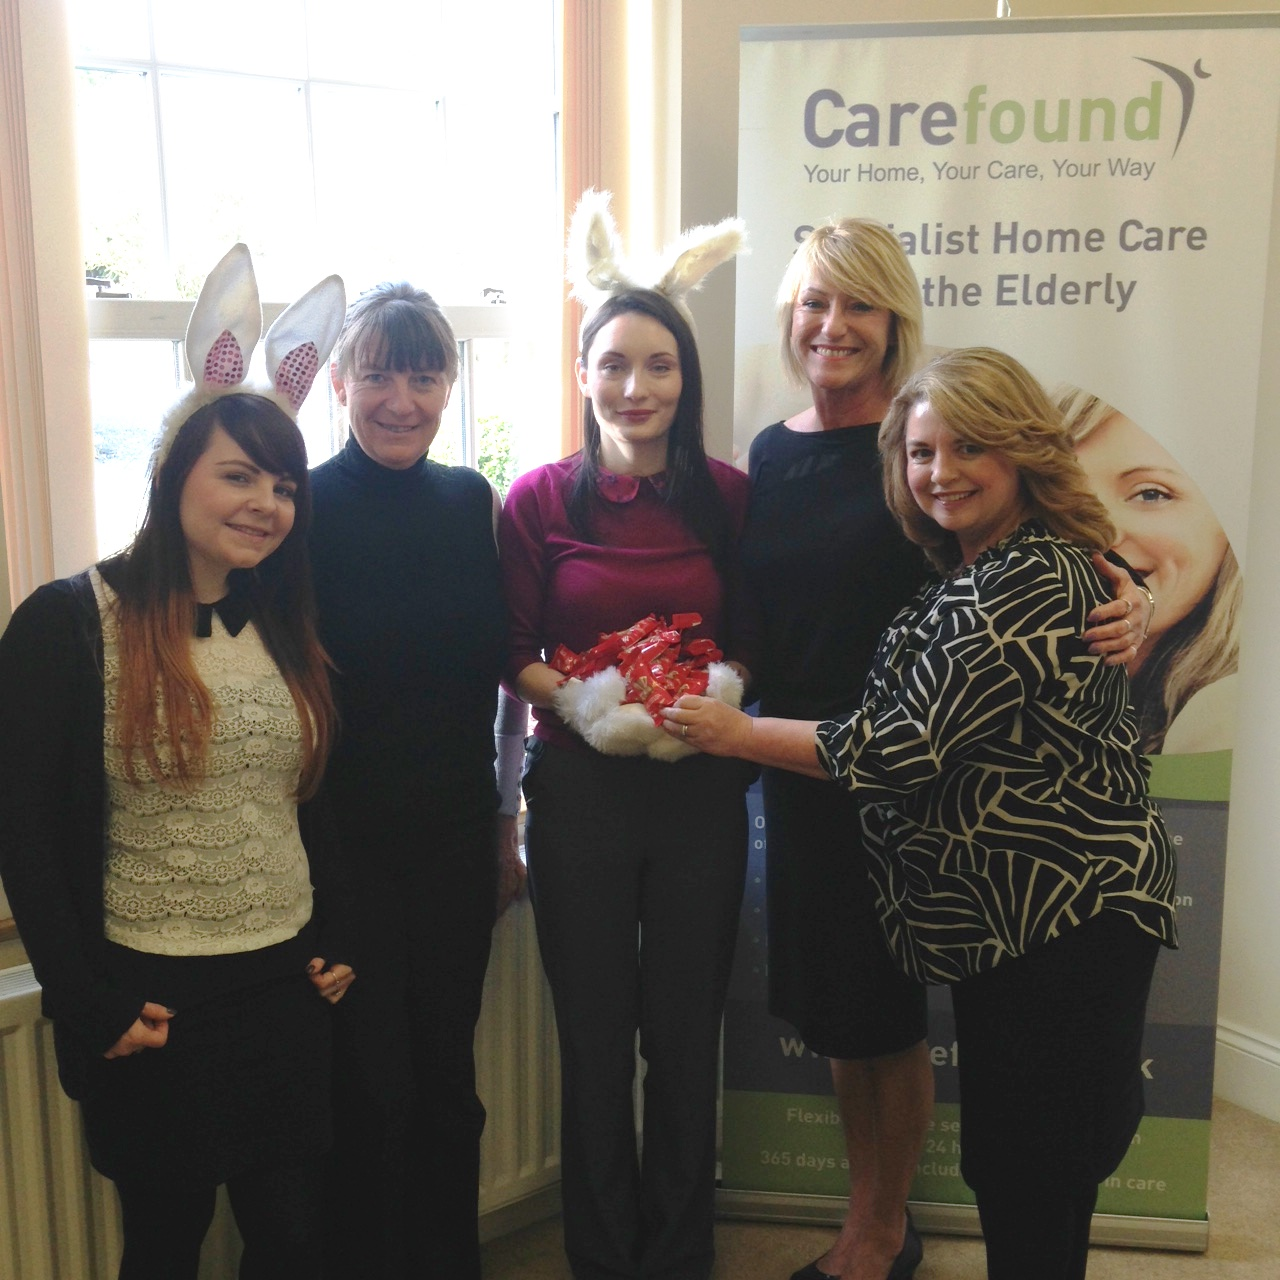 The Carefound Home Care team with Easter treats